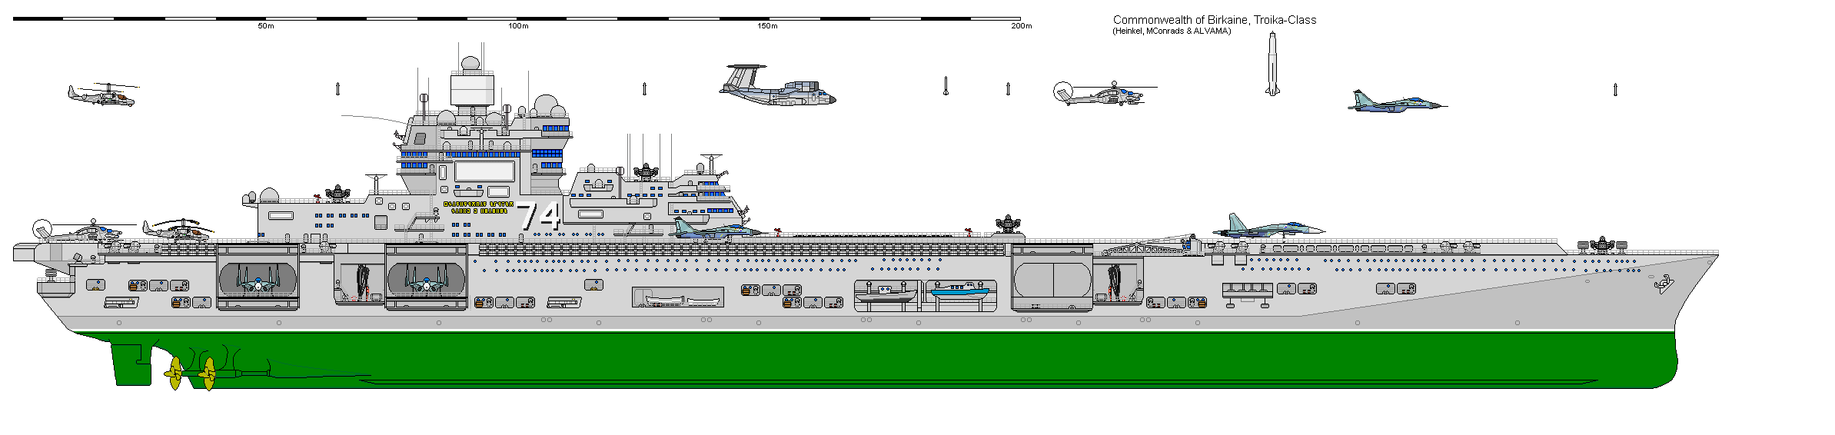 Troika-Class Supercarrier by VoughtVindicator